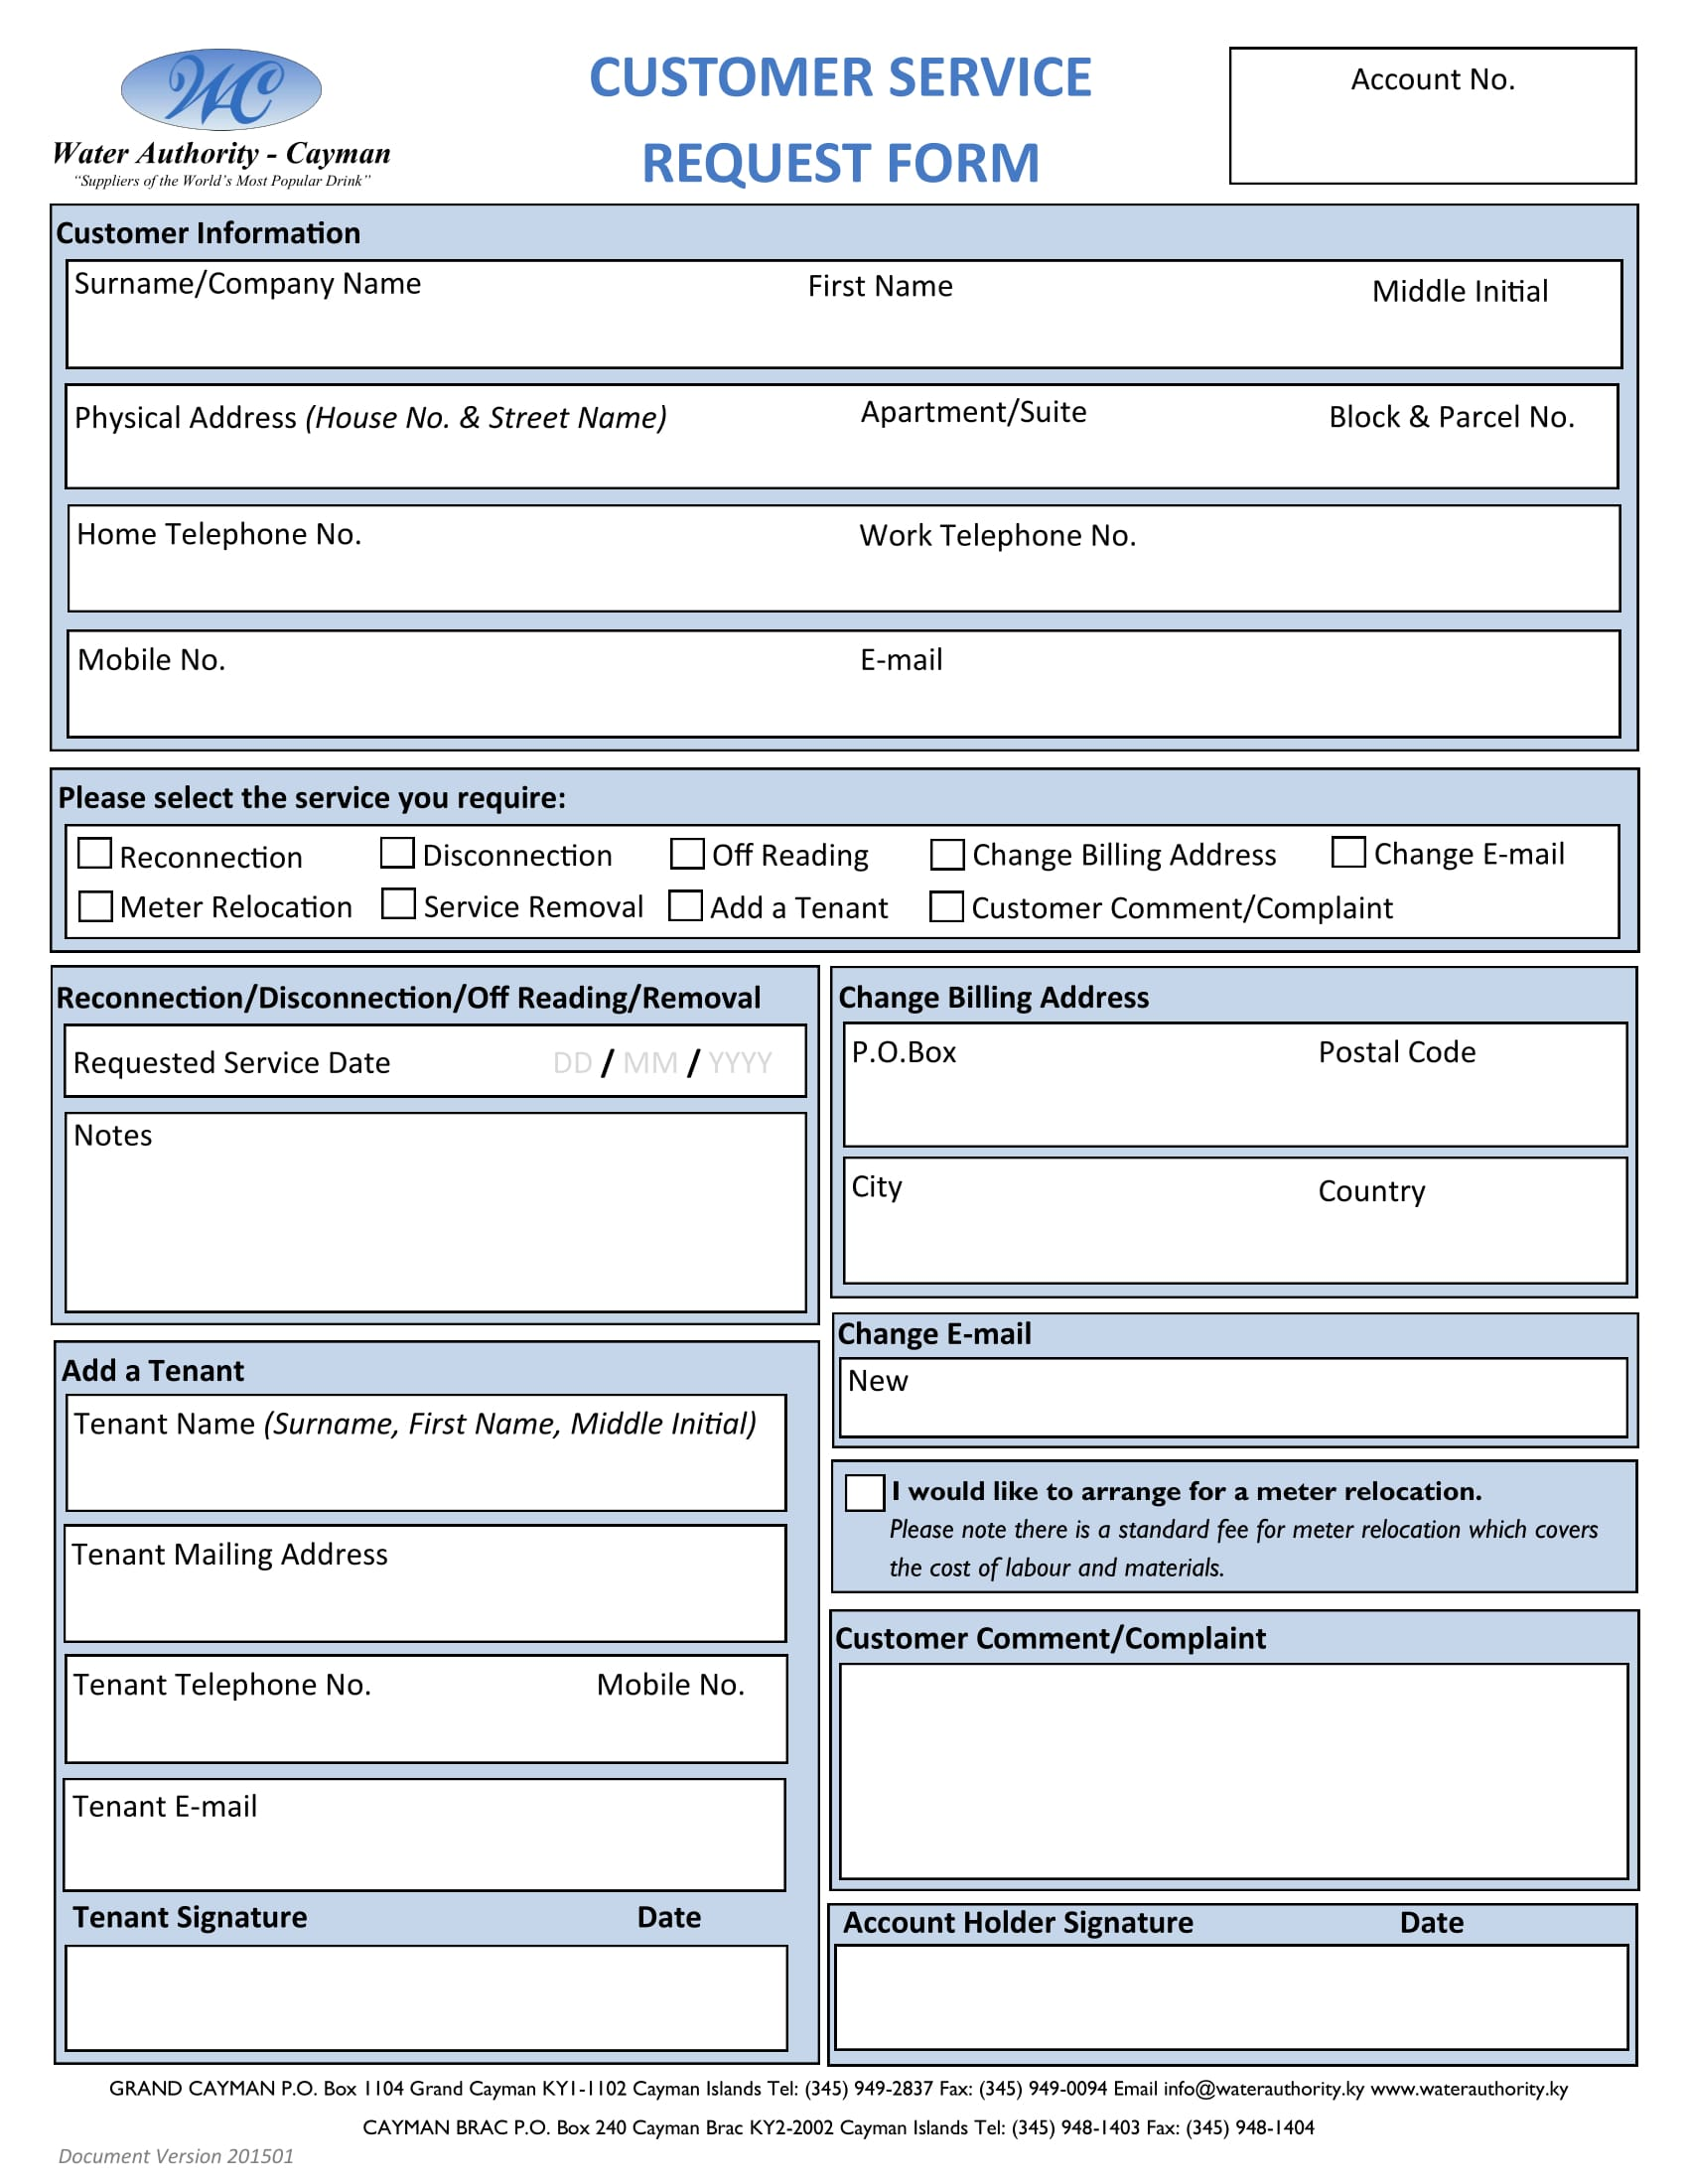 sample for customer service request form 1